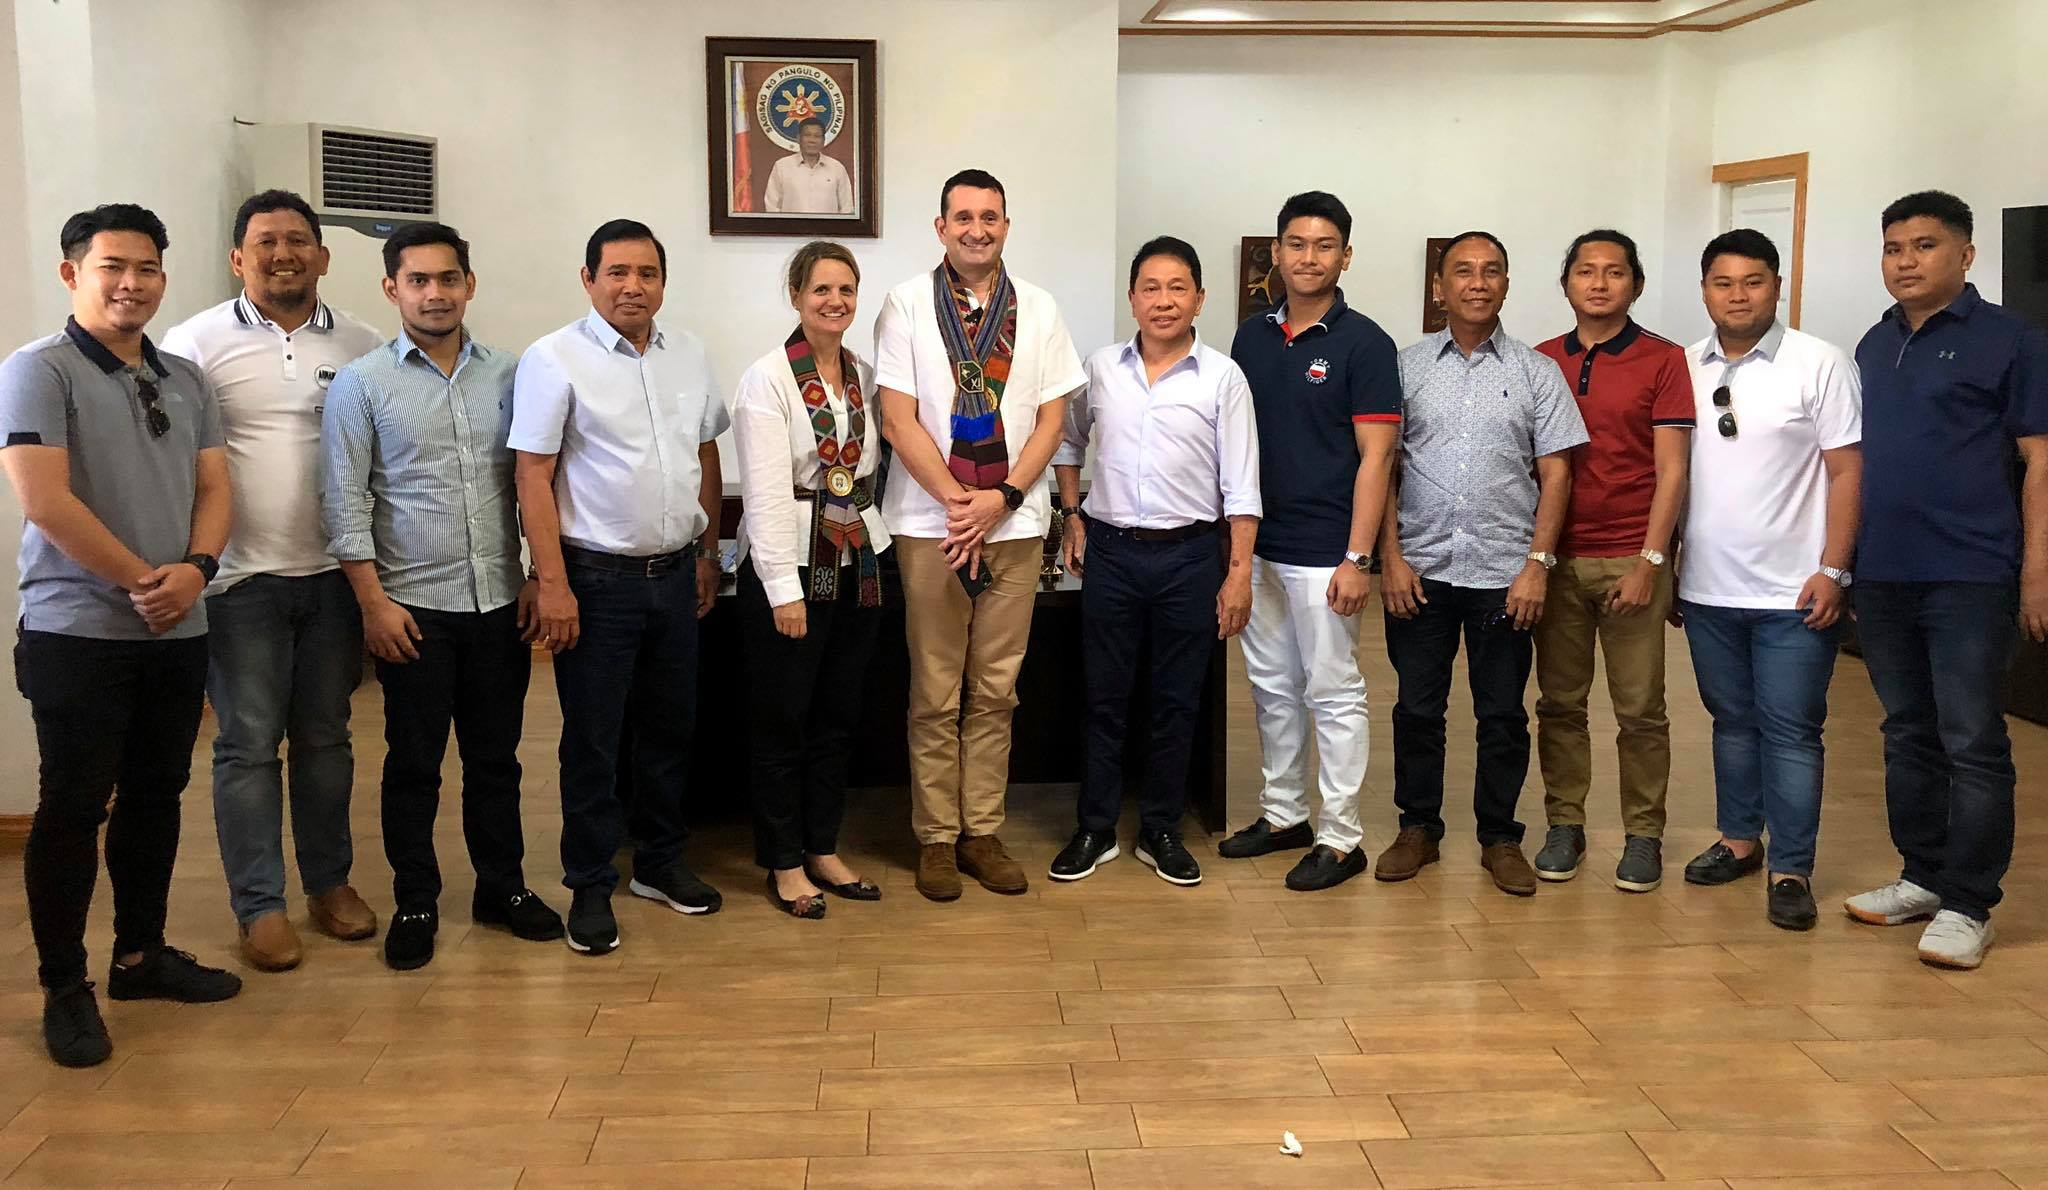 Norway goes to Sulu archipelago, continues mission to promote peace in PH